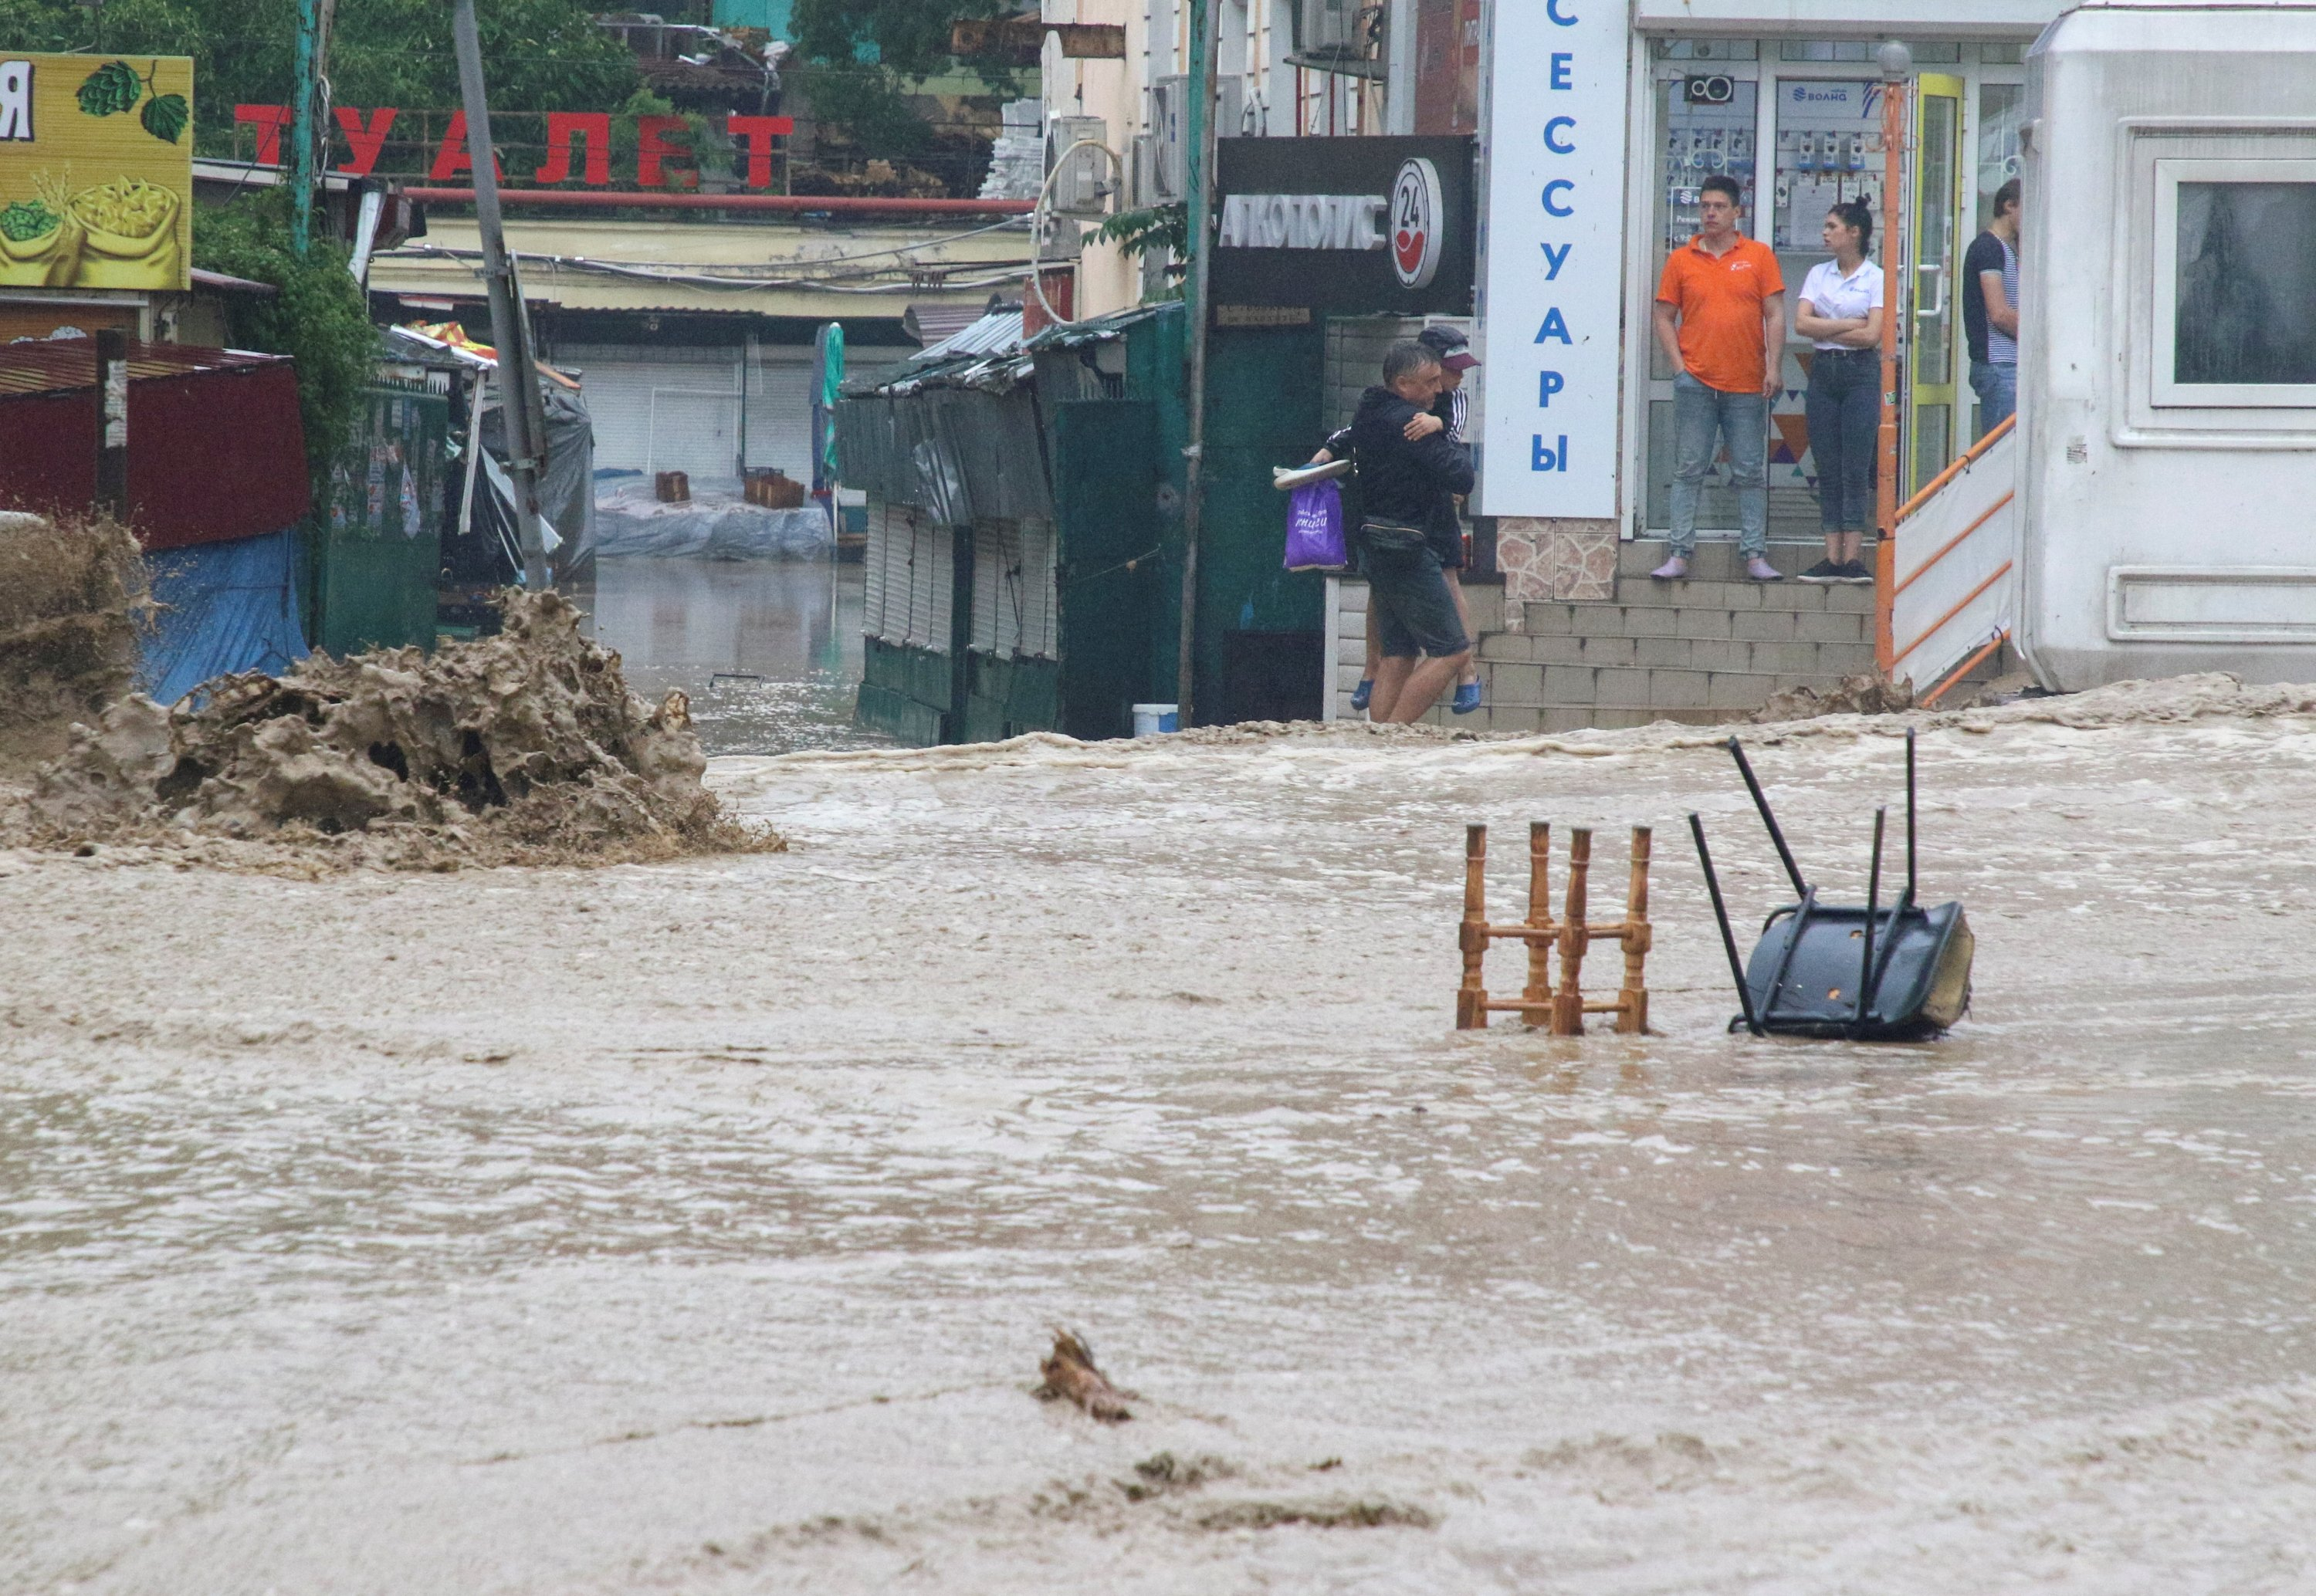 Water flows along a street after heavy rain caused flooding in Yalta, Crimea, Ukraine, June 18, 2021. (Reuters Photo)